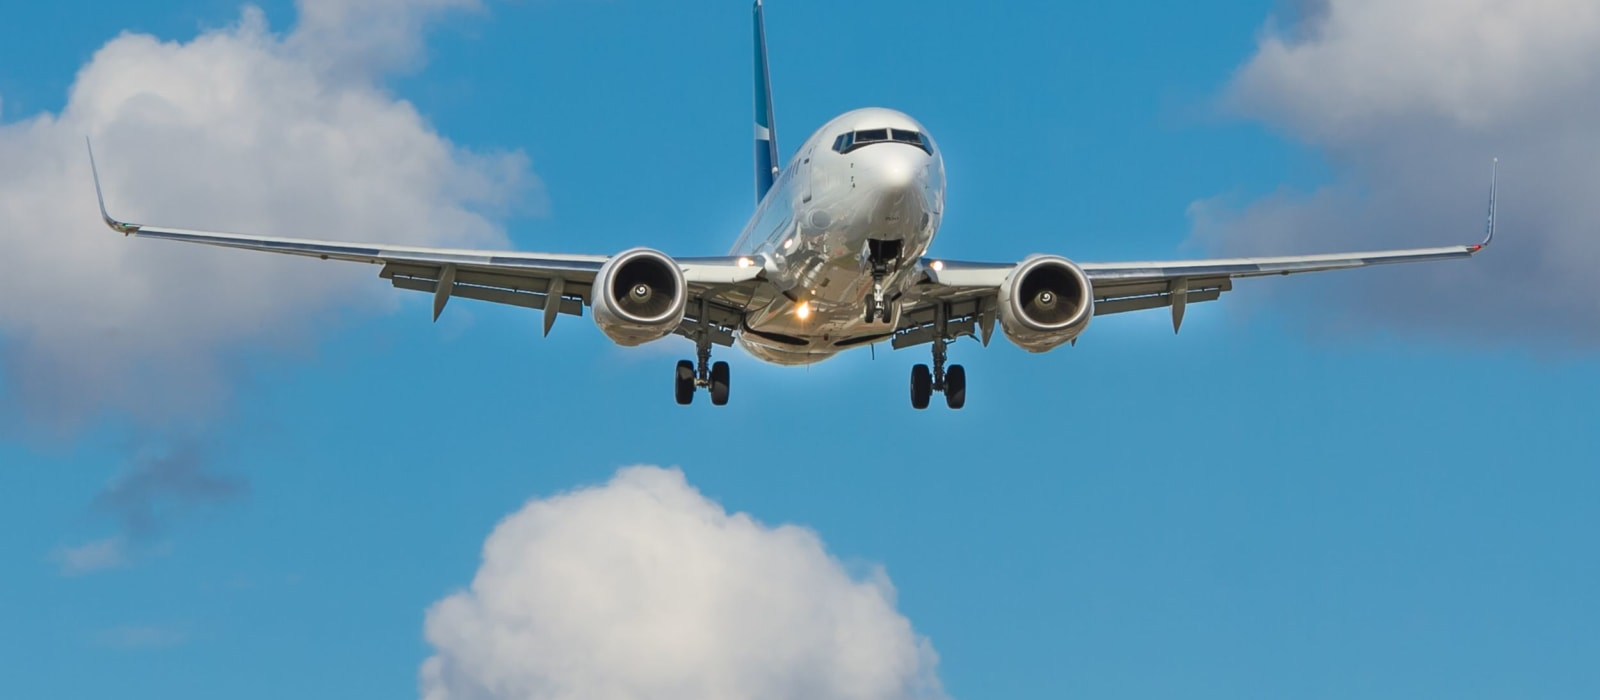 Aviation sector has its wings clipped by landmark court decision